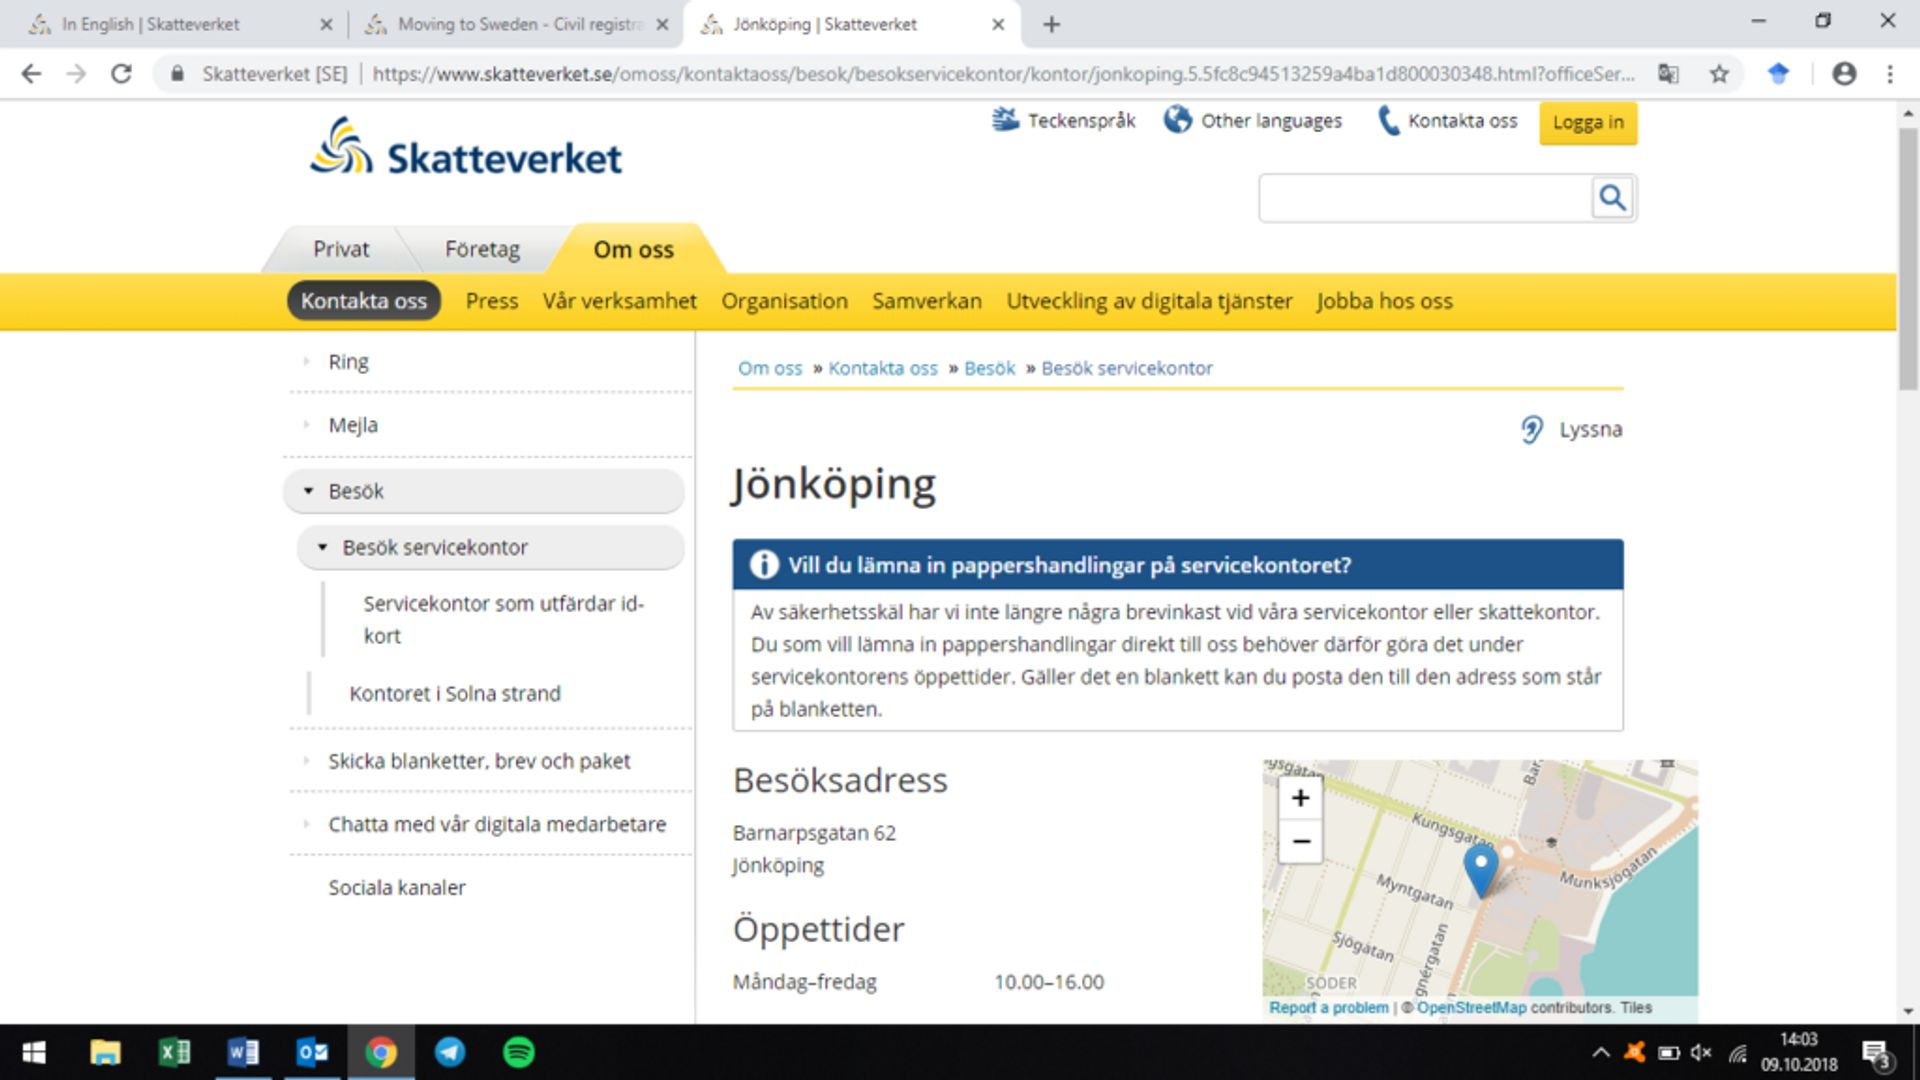 Screenshot showing the location of the Tax Agency's office in Jönköping.